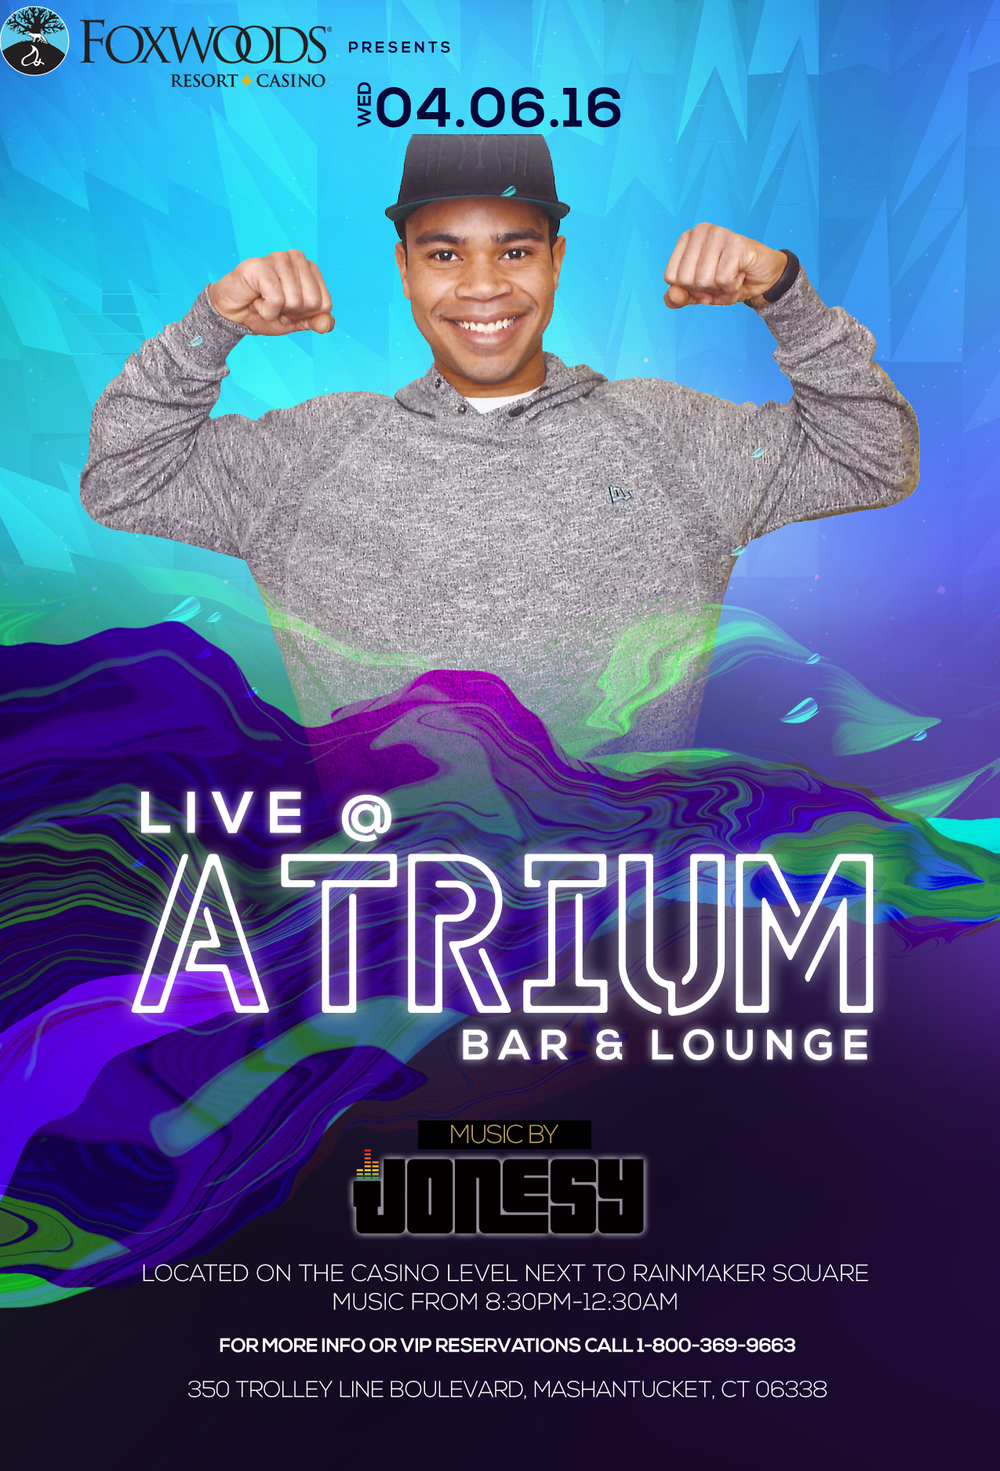 Wednesday, April 6th I make my way back to  Foxwoods Resort Casino  at the  Atrium Lounge , located on the Casino Level next to Rainmaker Square.  Music from 8:30pm-12:30am.  Meet me there!